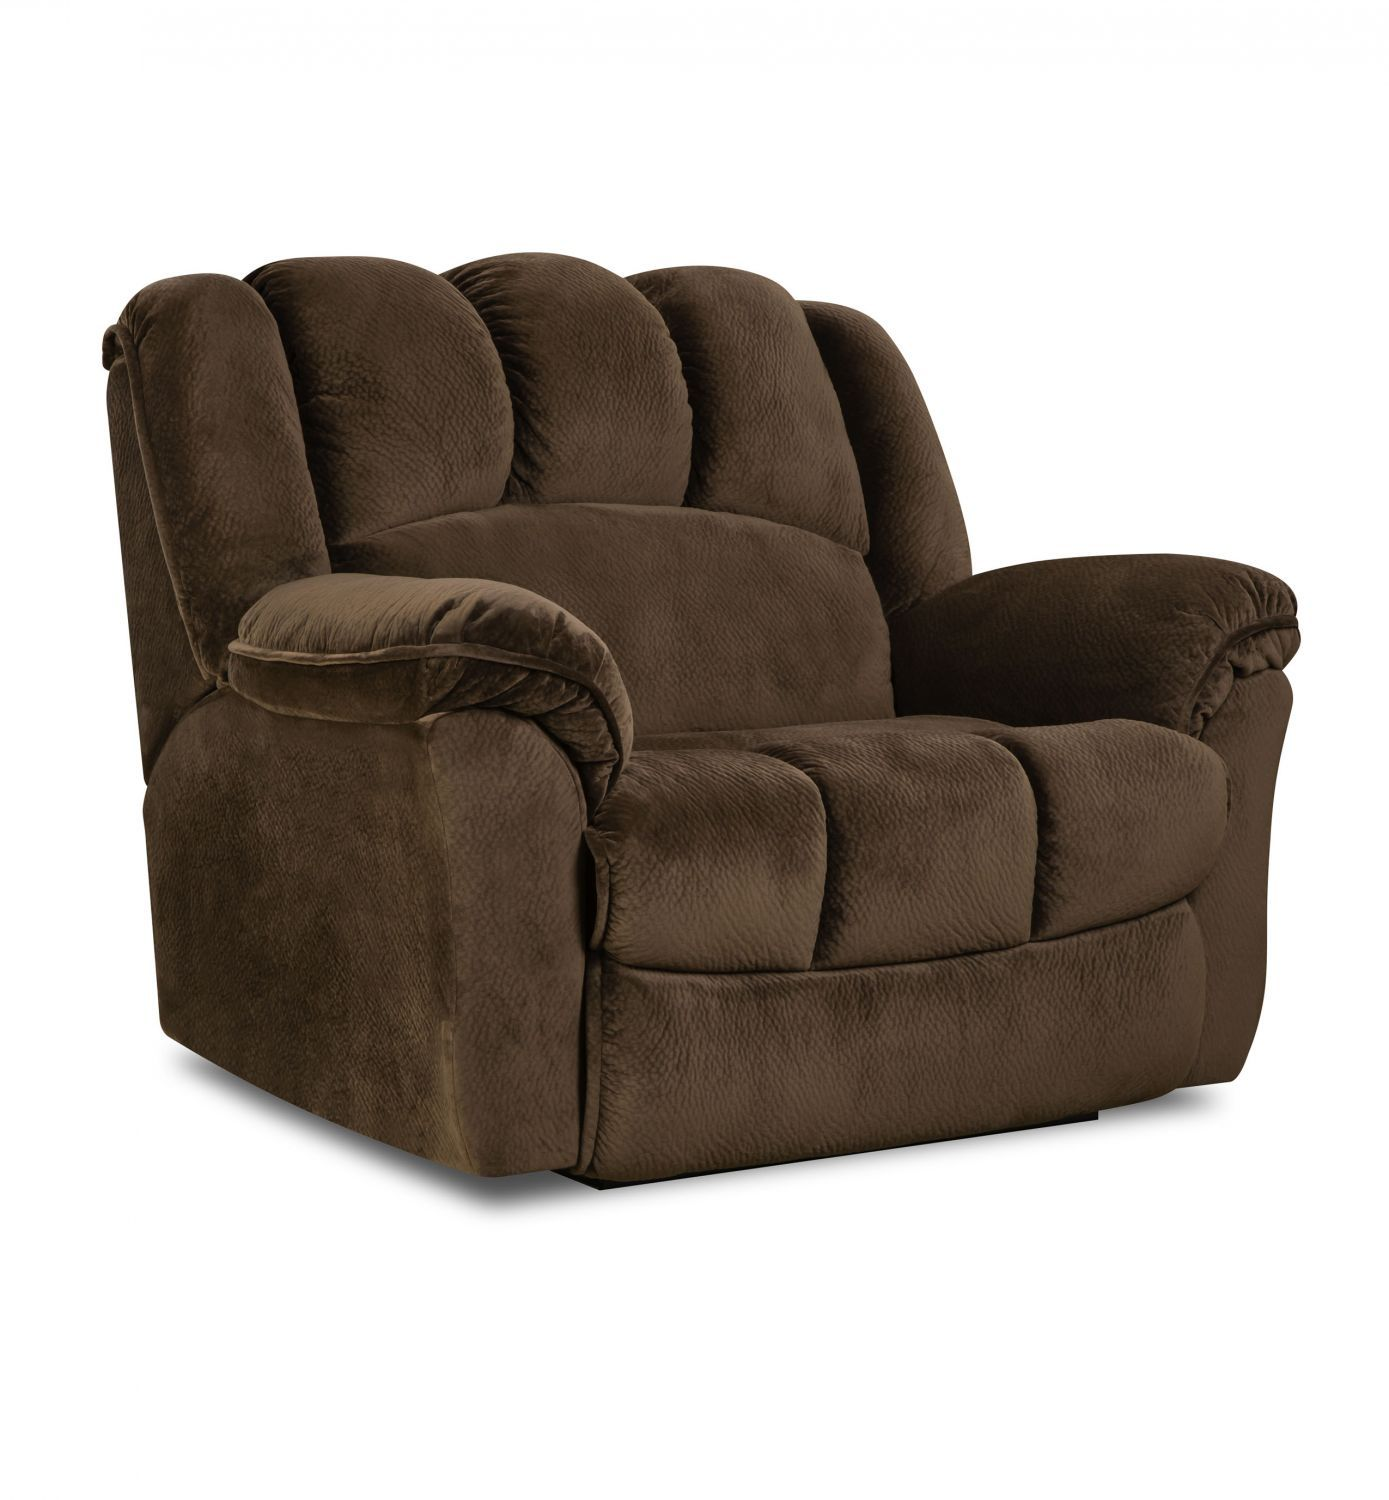 Oversized Living Room Chair This Oversized Snuggler Recliner Is Just Big Enough For